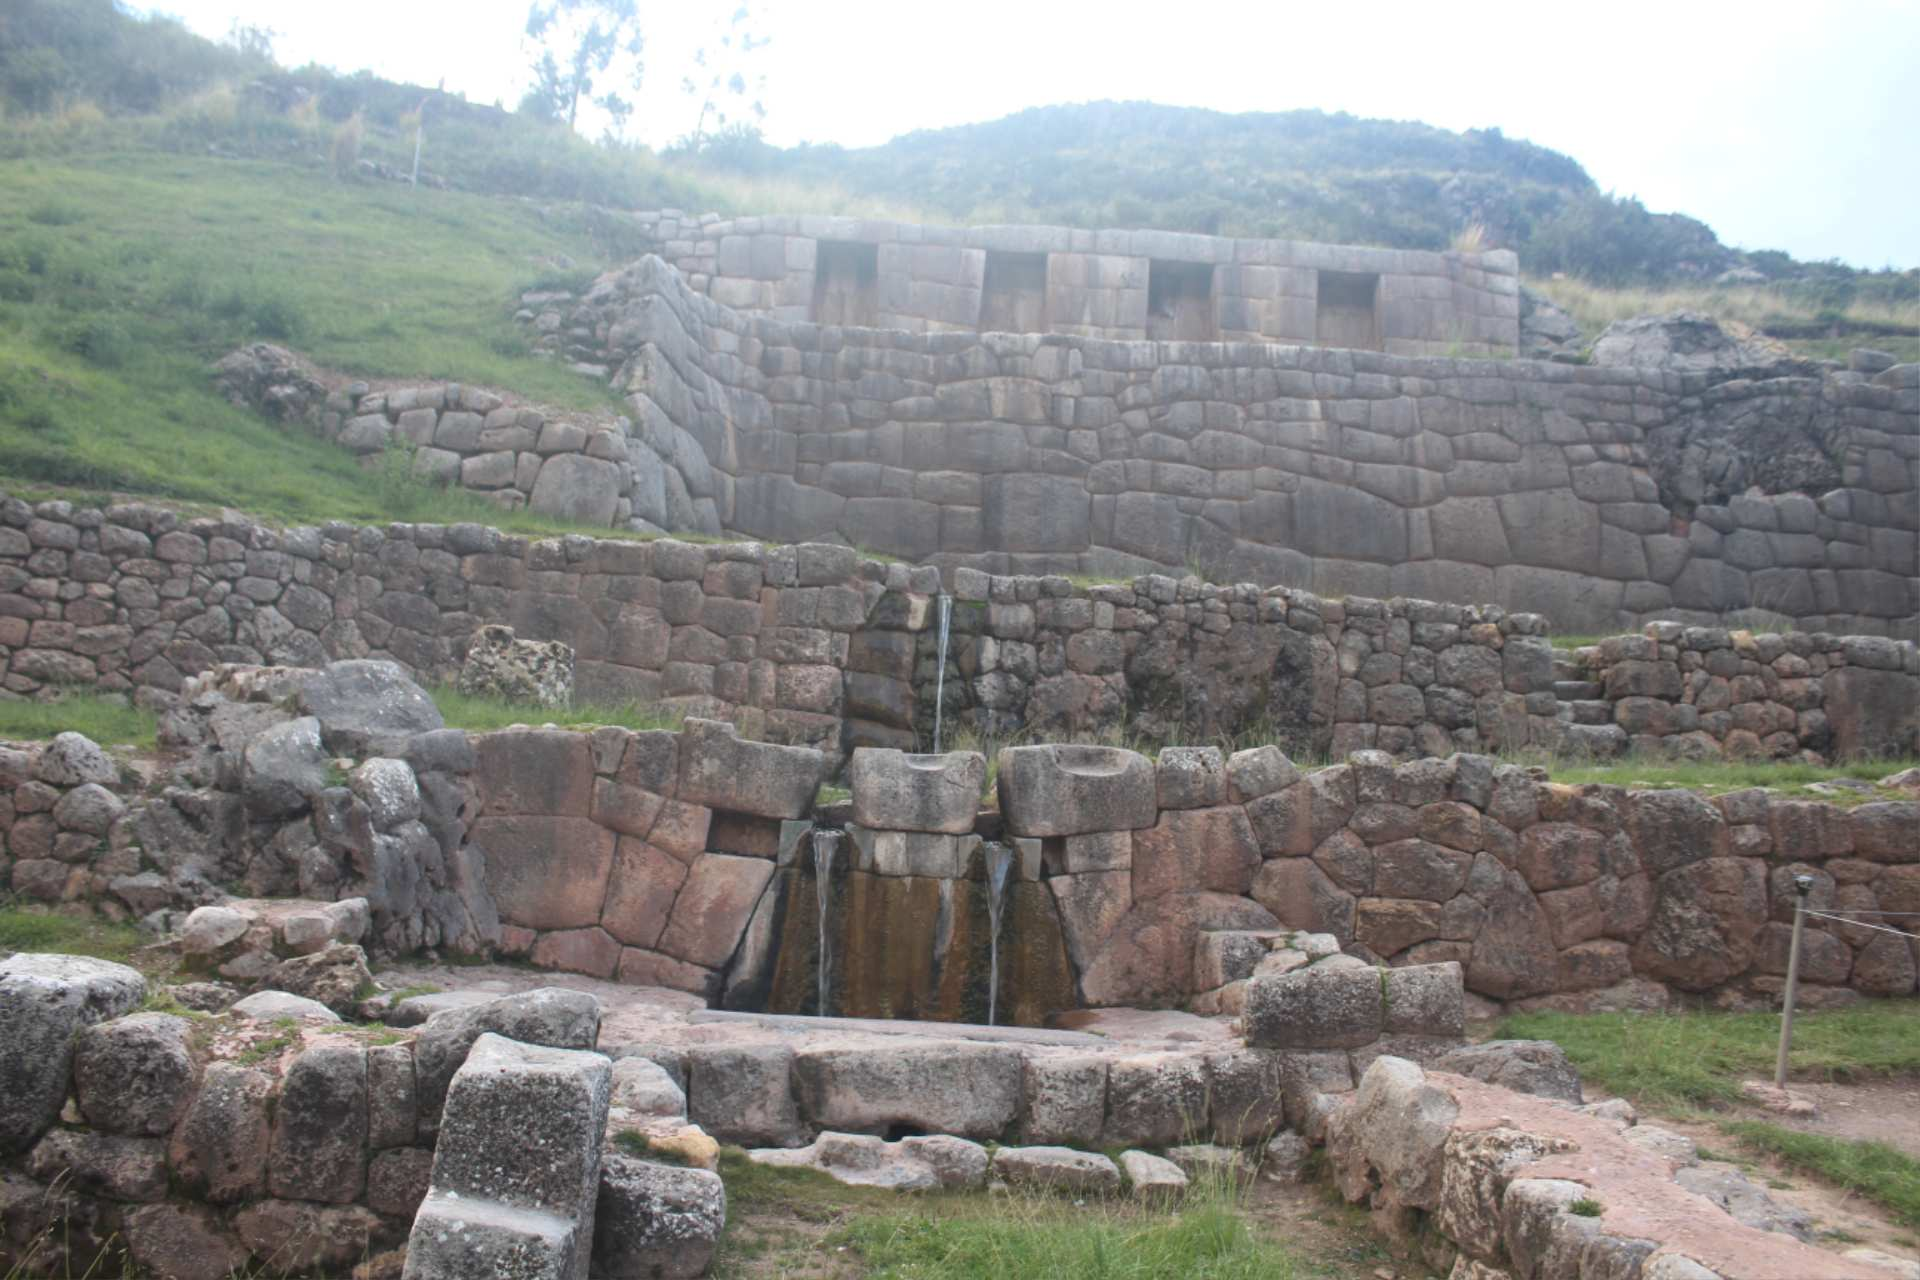 Tambomachay is an Incan ruins site near Cusco, Peru http://infromtheoutpost.com